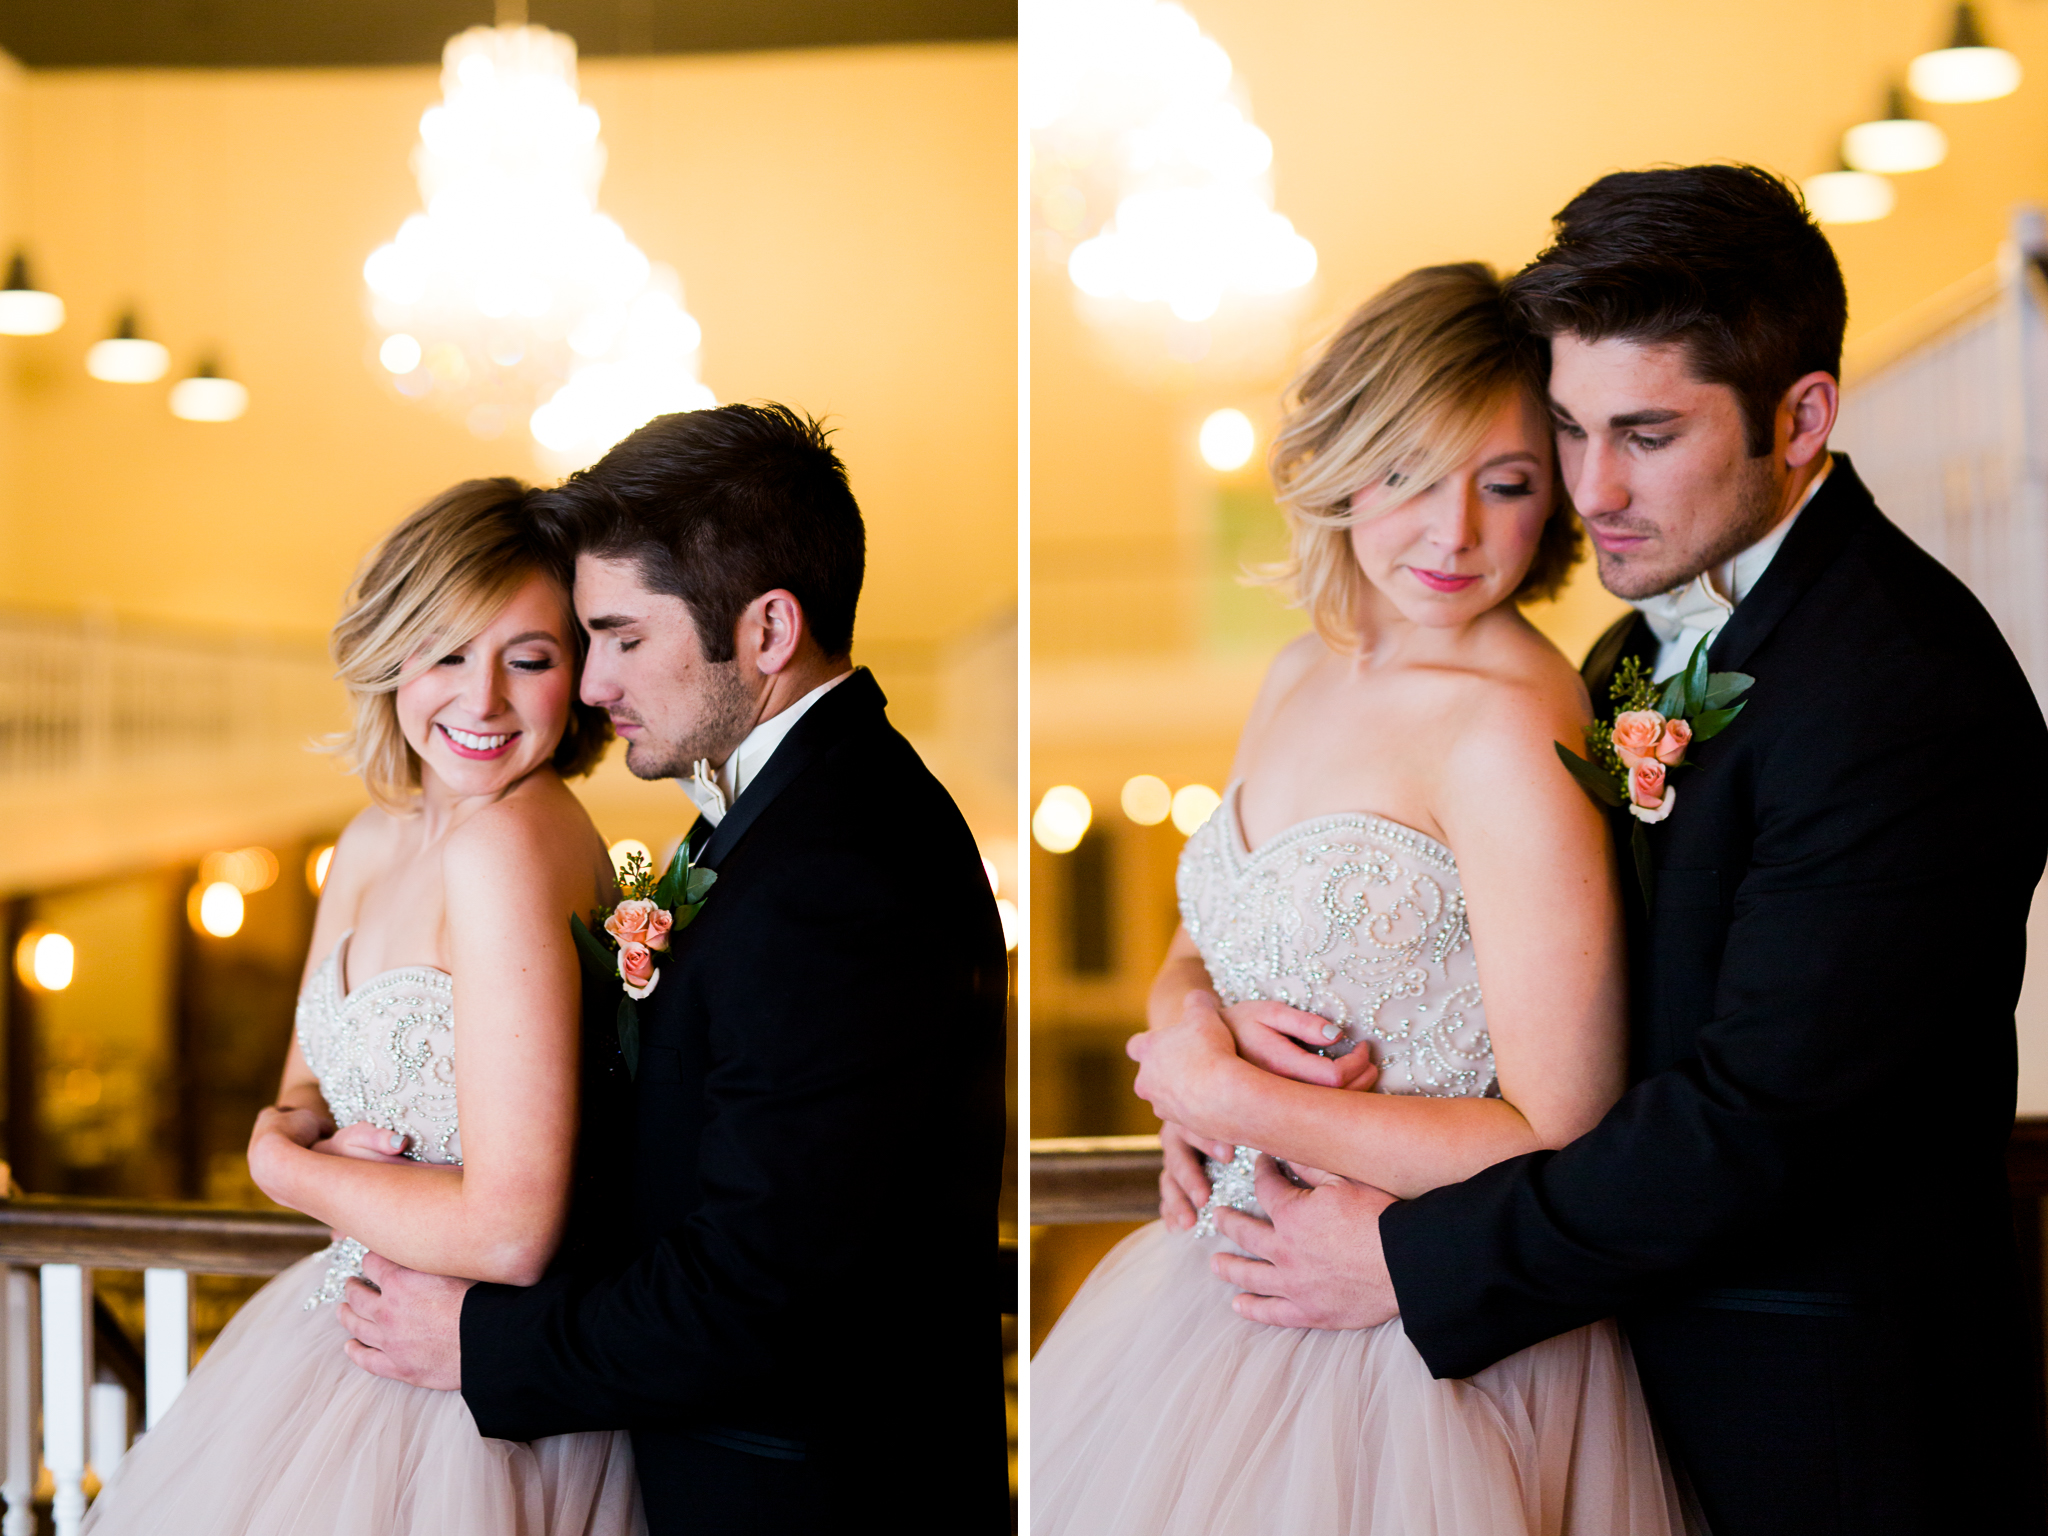 The Grand Canadian Theater OKC Purcell Wedding Venue Ashley Porton Photography chandelier.jpg